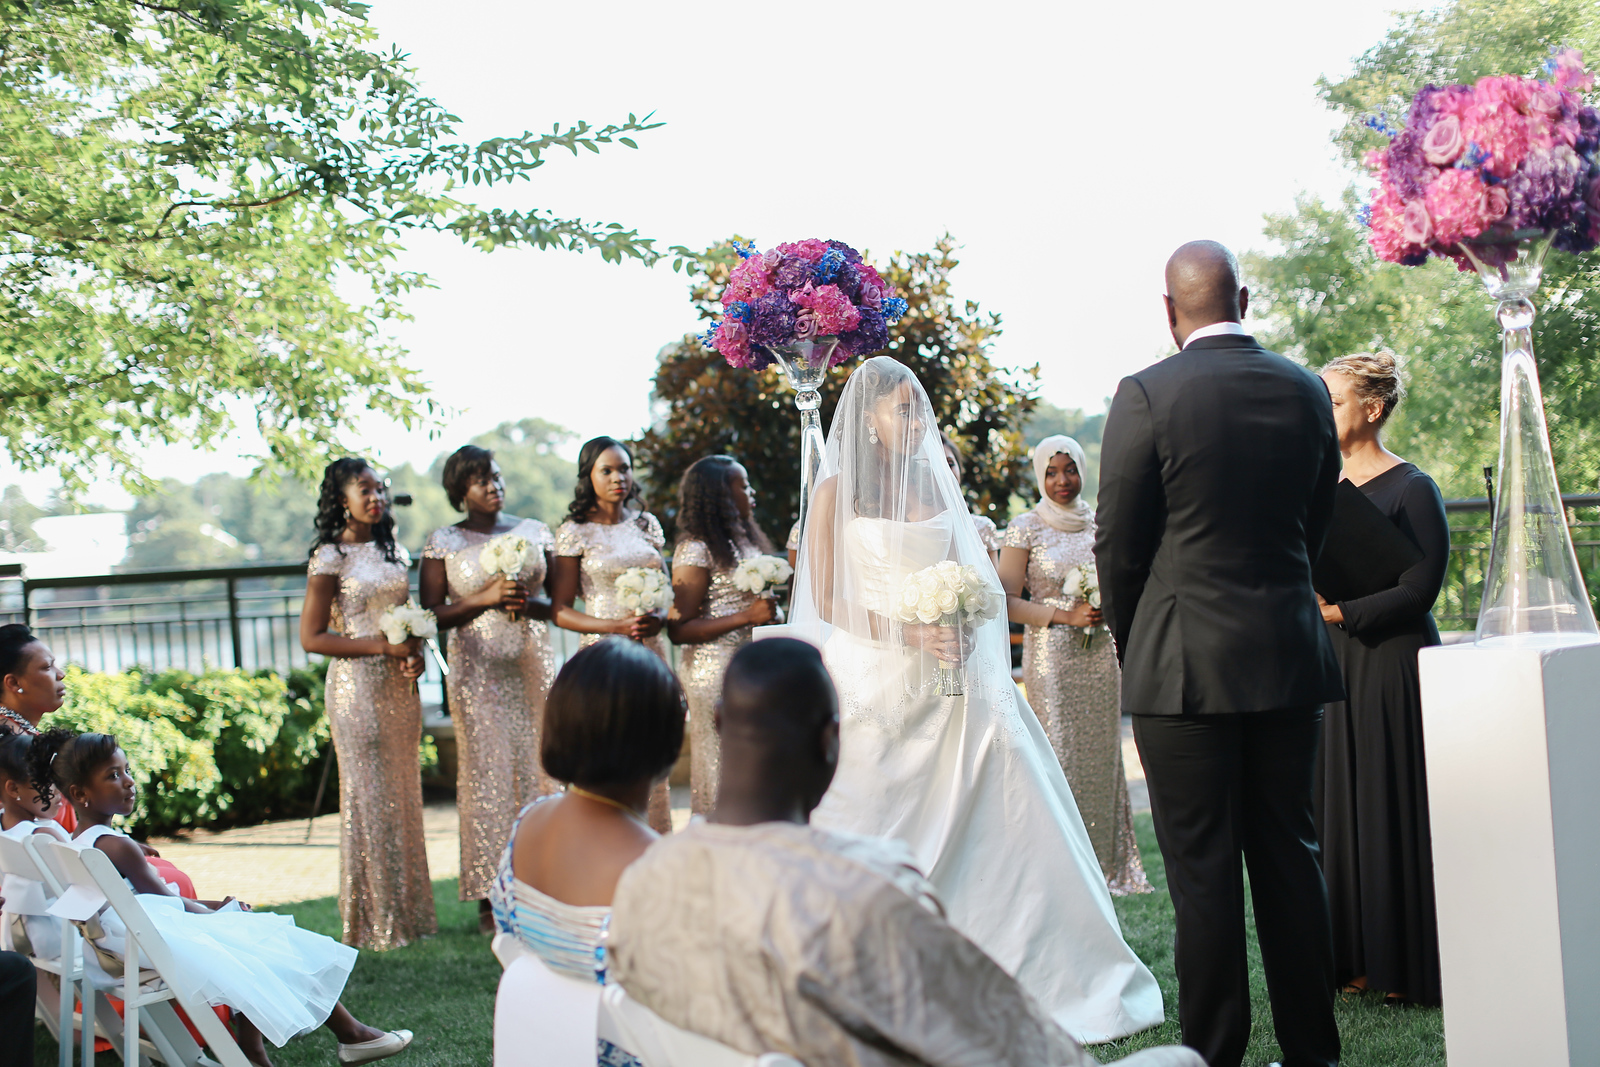 Mandarin Oriental wedding photos in Washington, DC by Jalapeno Photography.